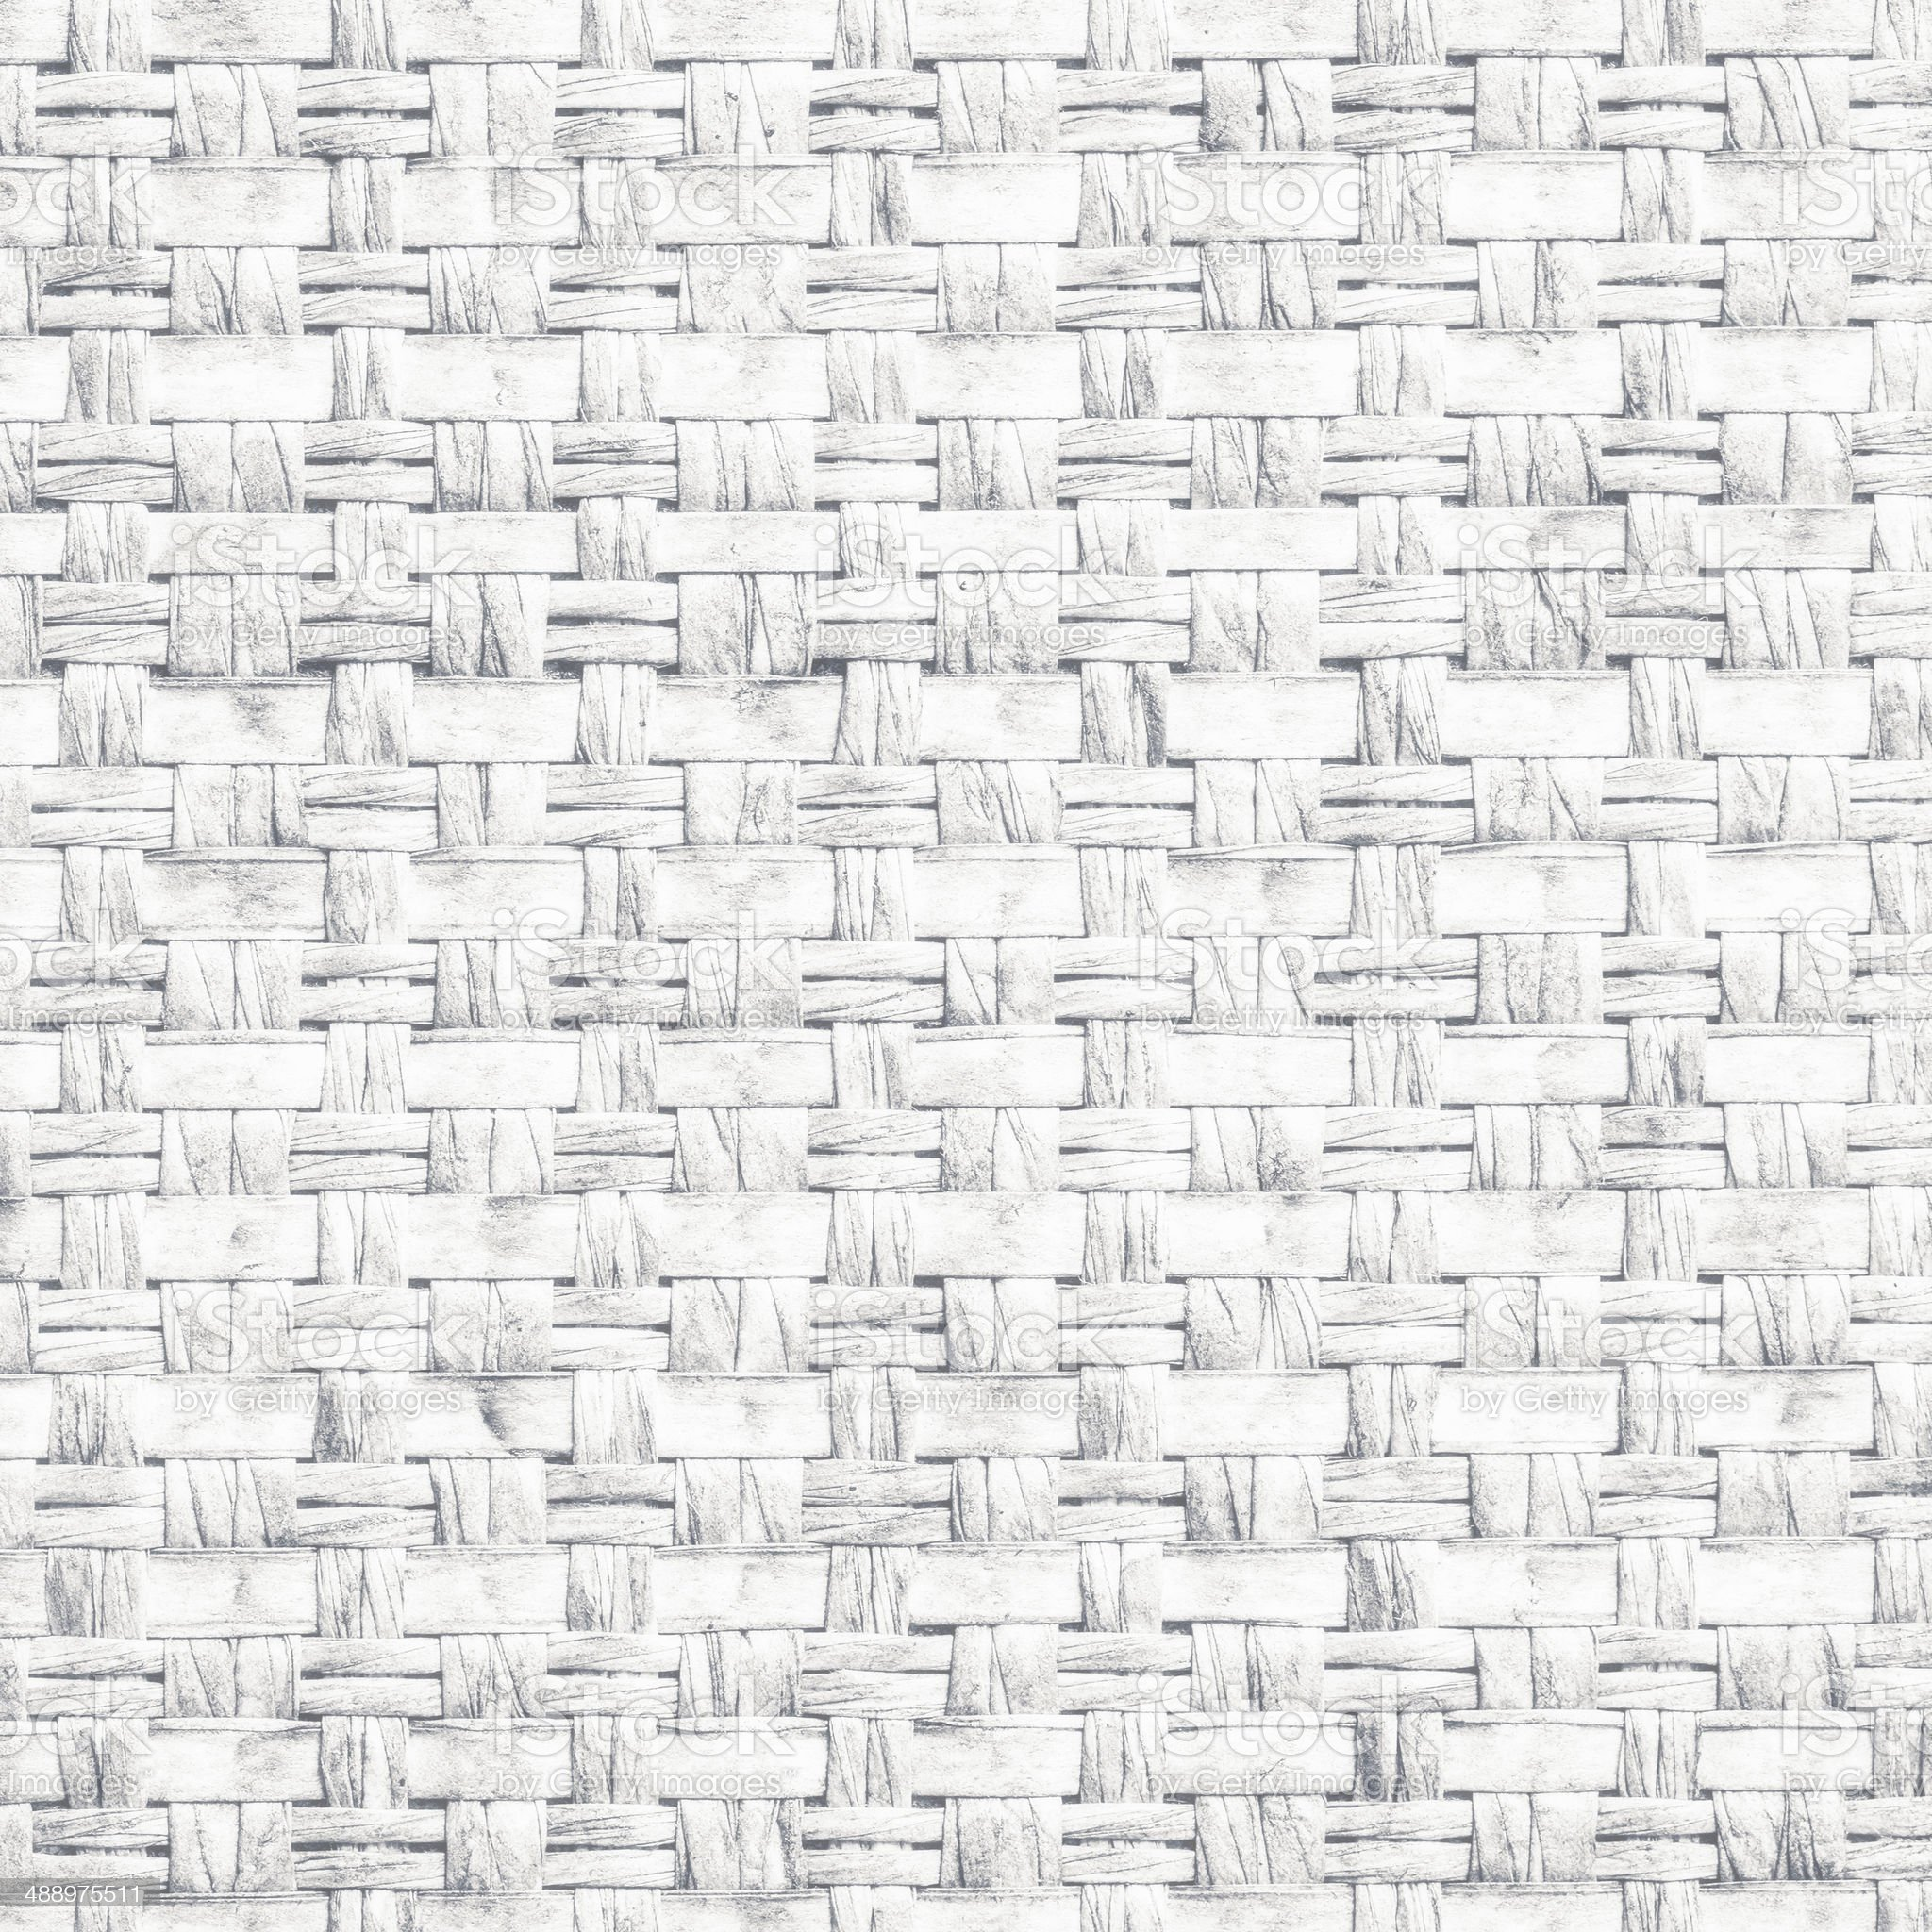 White woven leather background royalty-free stock photo